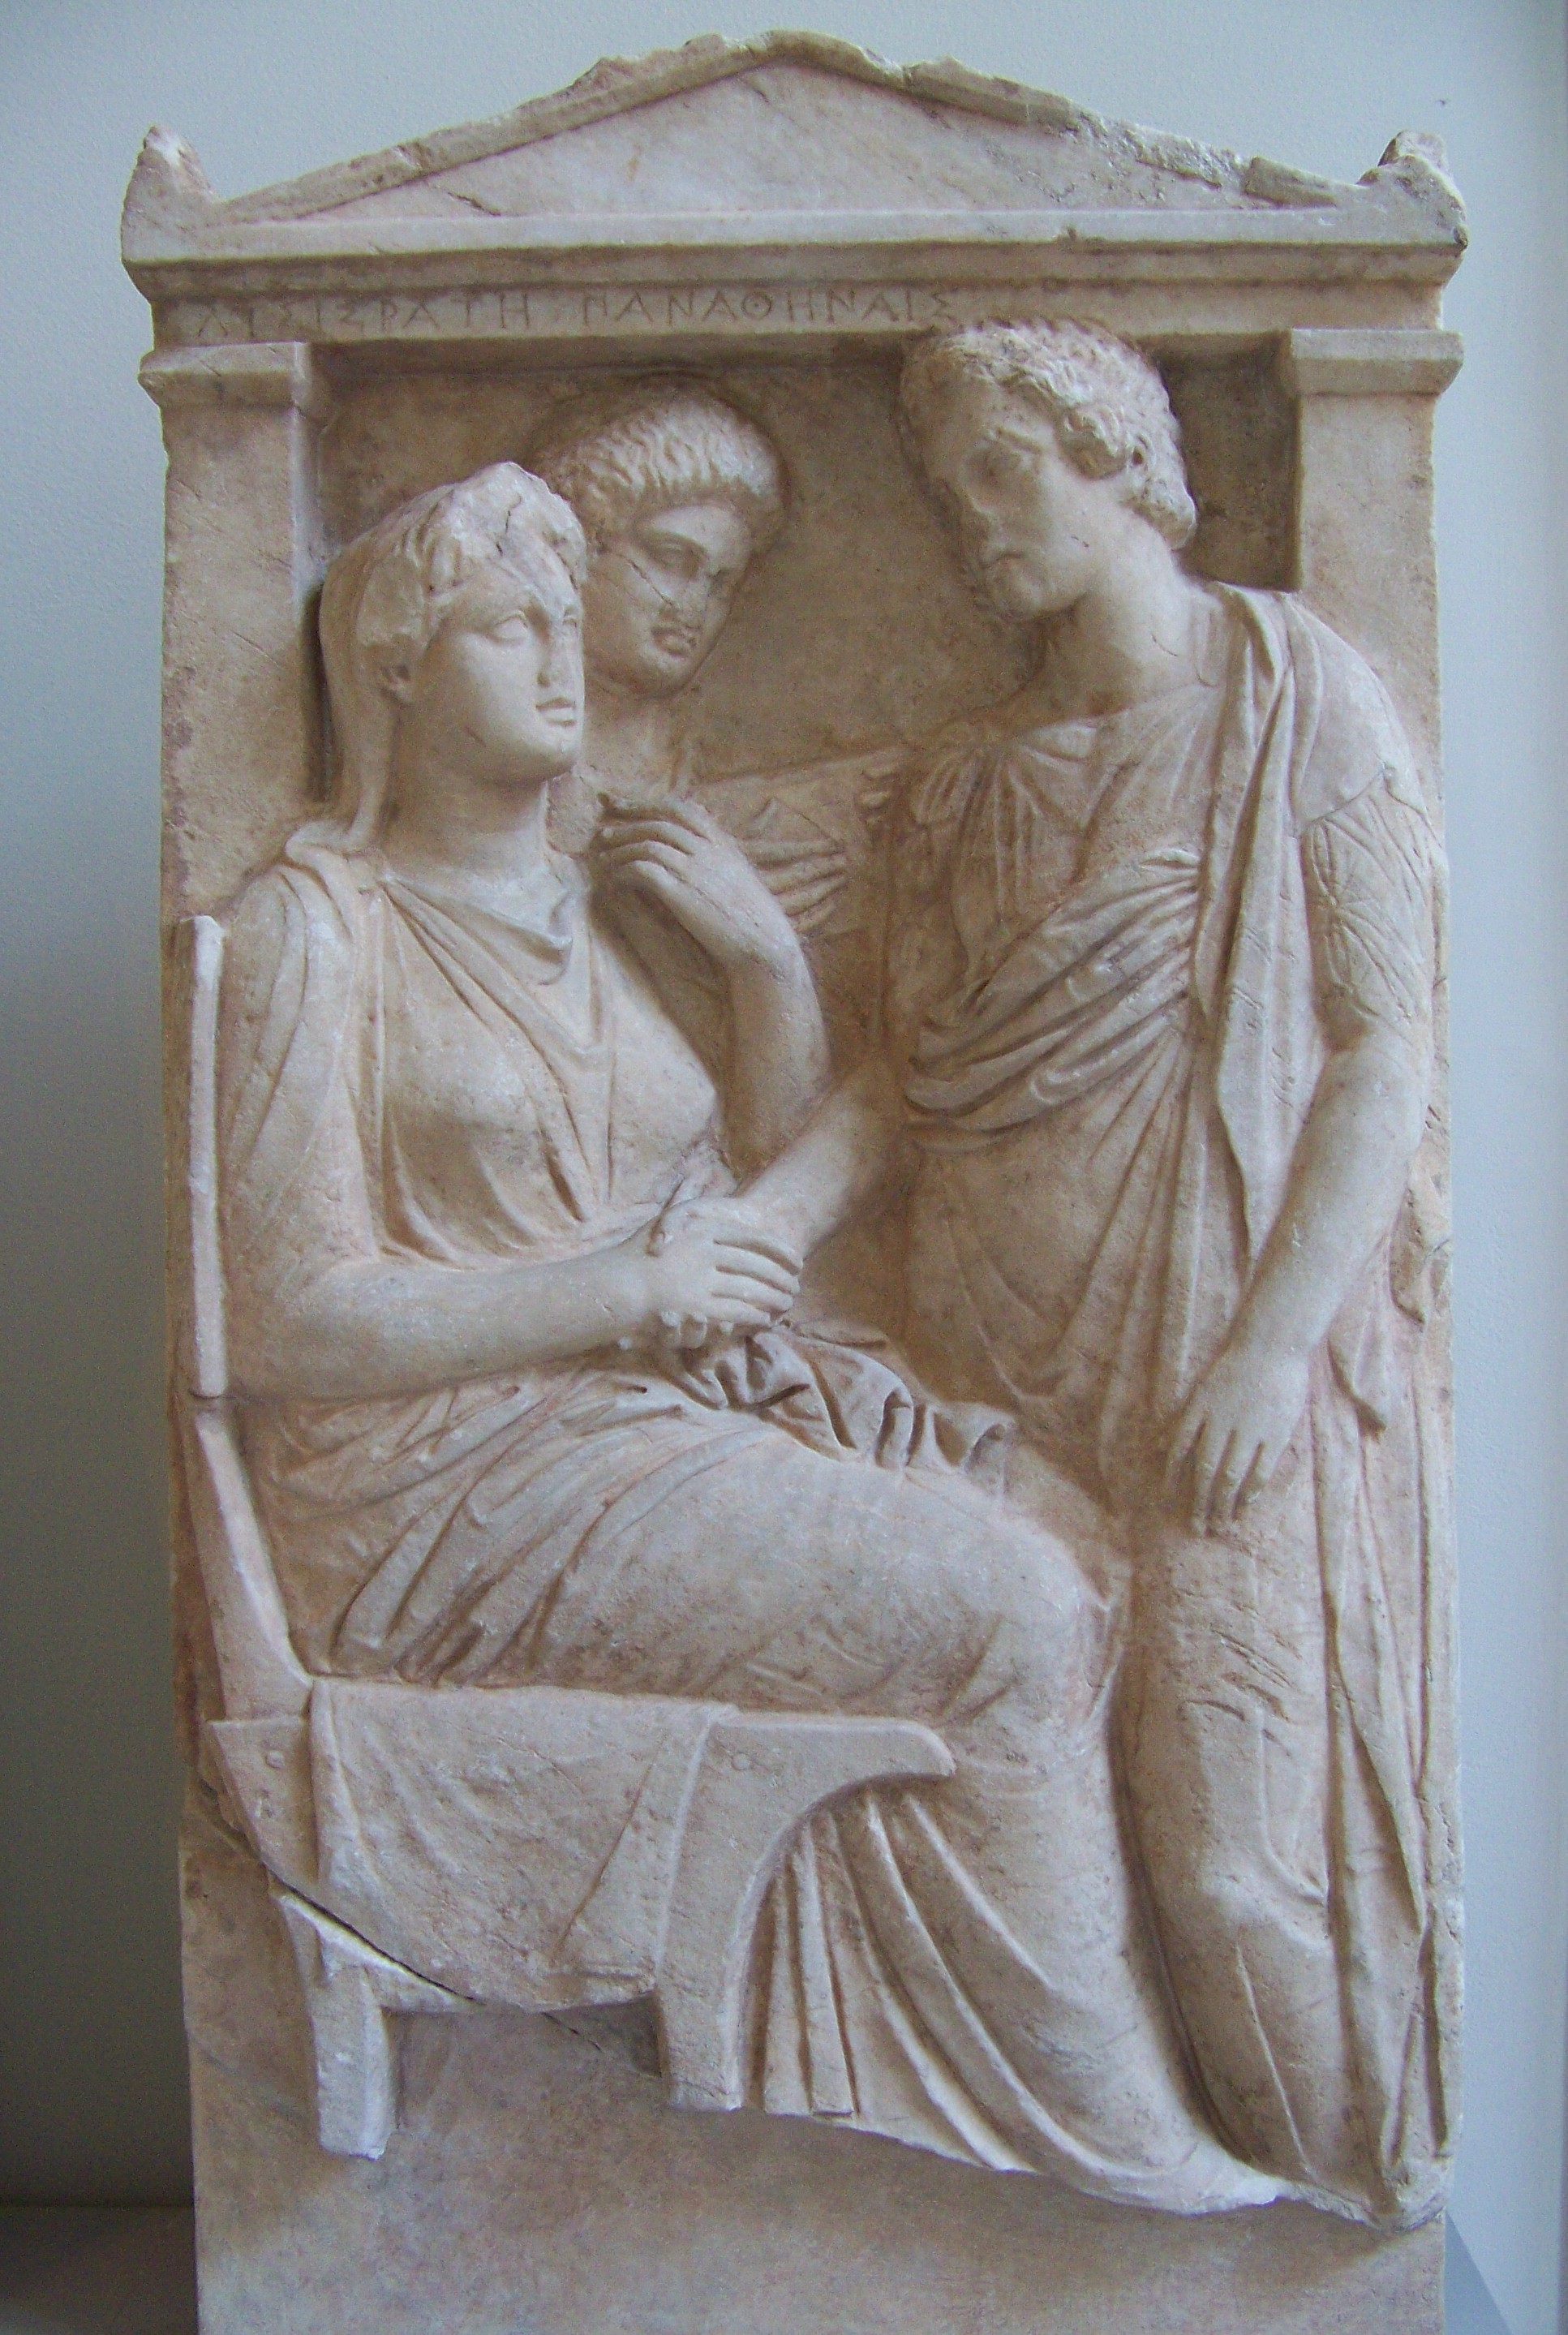 essays on antigone and creon In which ways are creon and antigone both destroyed by the power of the law thesis statement / essay topic #5: tragedy in antigone.